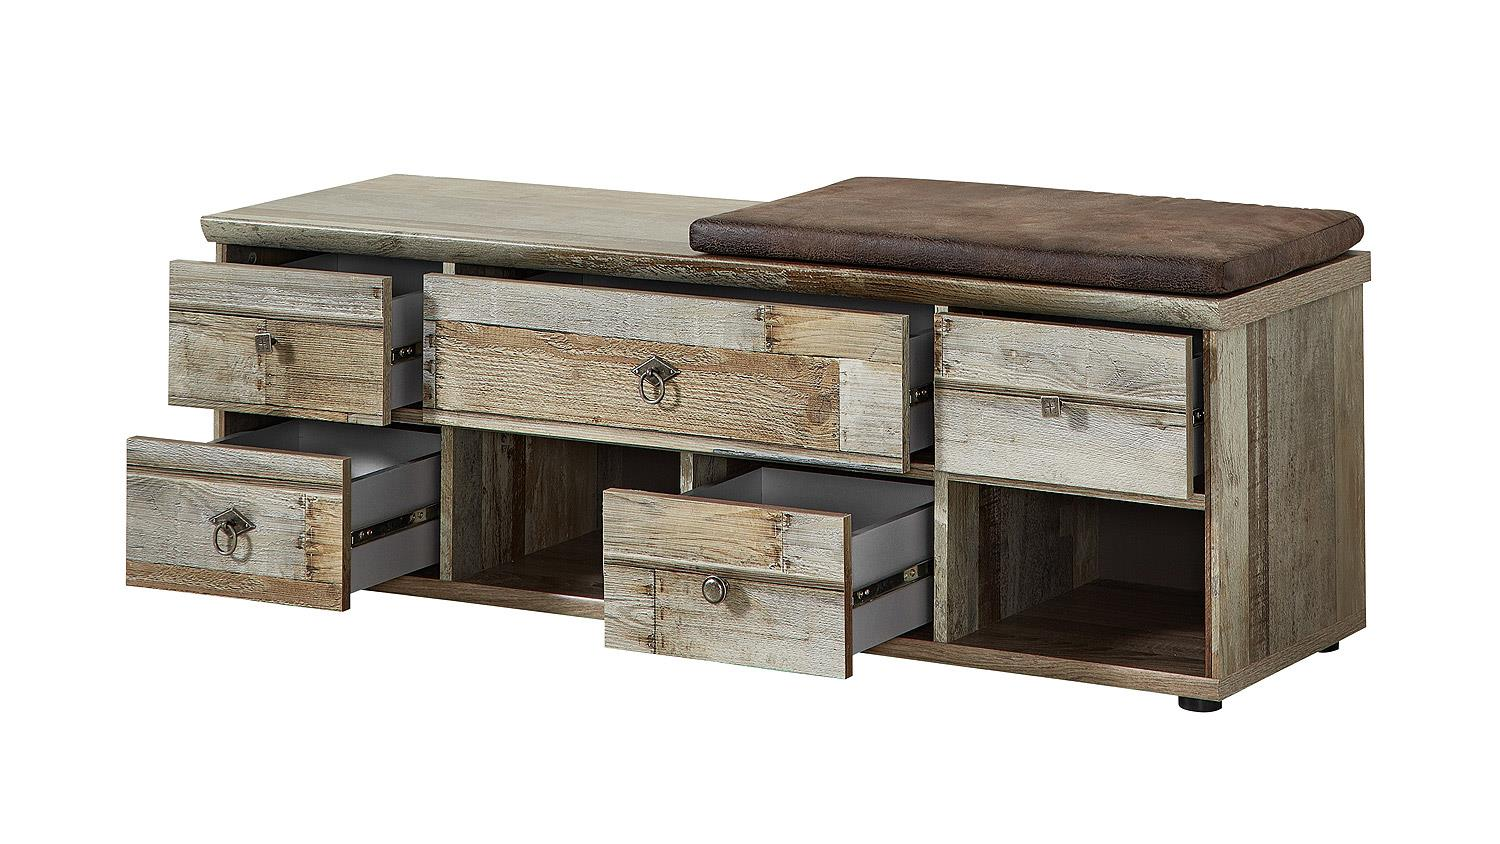 bank bonanza schubank inkl kissen braun driftwood b 130 cm. Black Bedroom Furniture Sets. Home Design Ideas